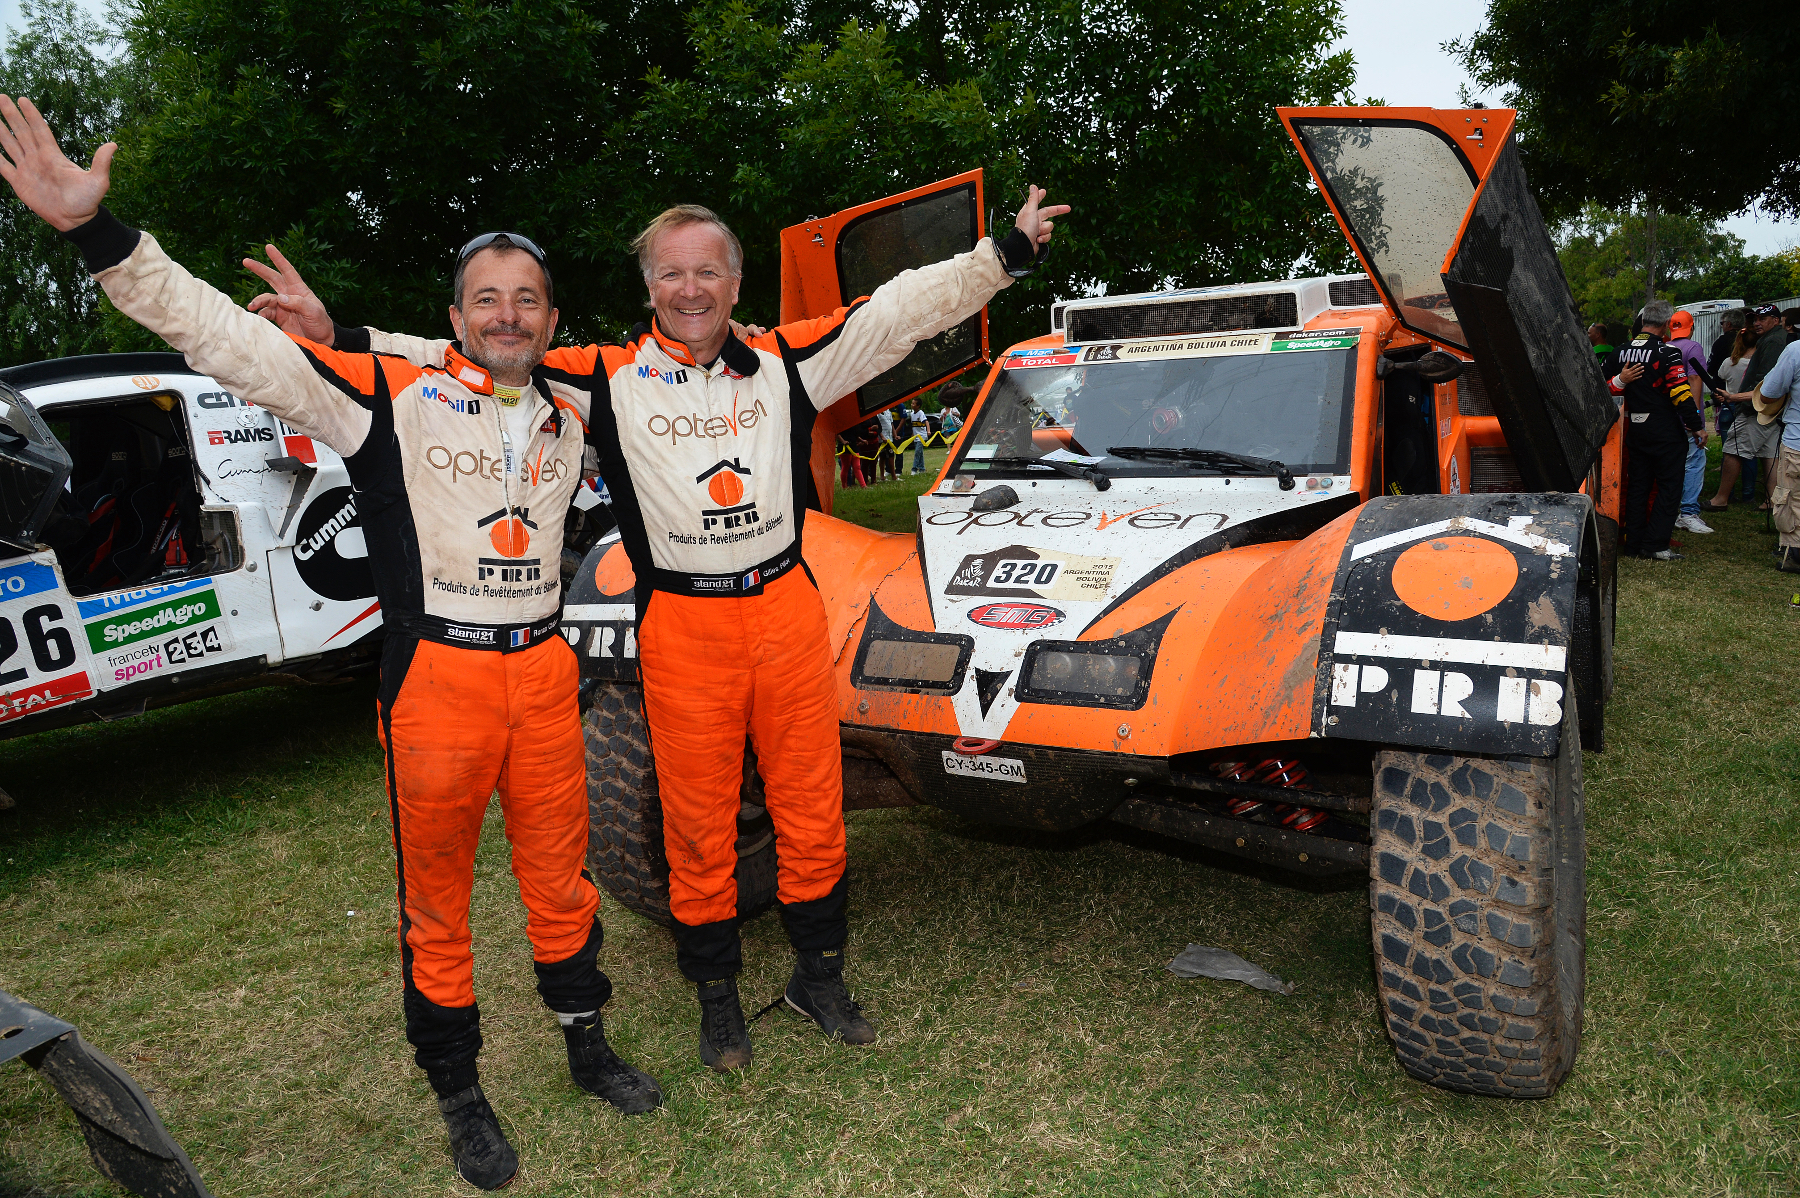 320 CHABOT Ronan (Fra) PILLOT Gilles (Fra) Smg ambiance during the Dakar 2015 Argentina Bolivia Chile, Stage 13 Finish and Podium /  Etape 13, Rosario to Buenos Aires on January 17th 2015 at Rosario, Argentina. Photo Eric Vargiolu / DPPI